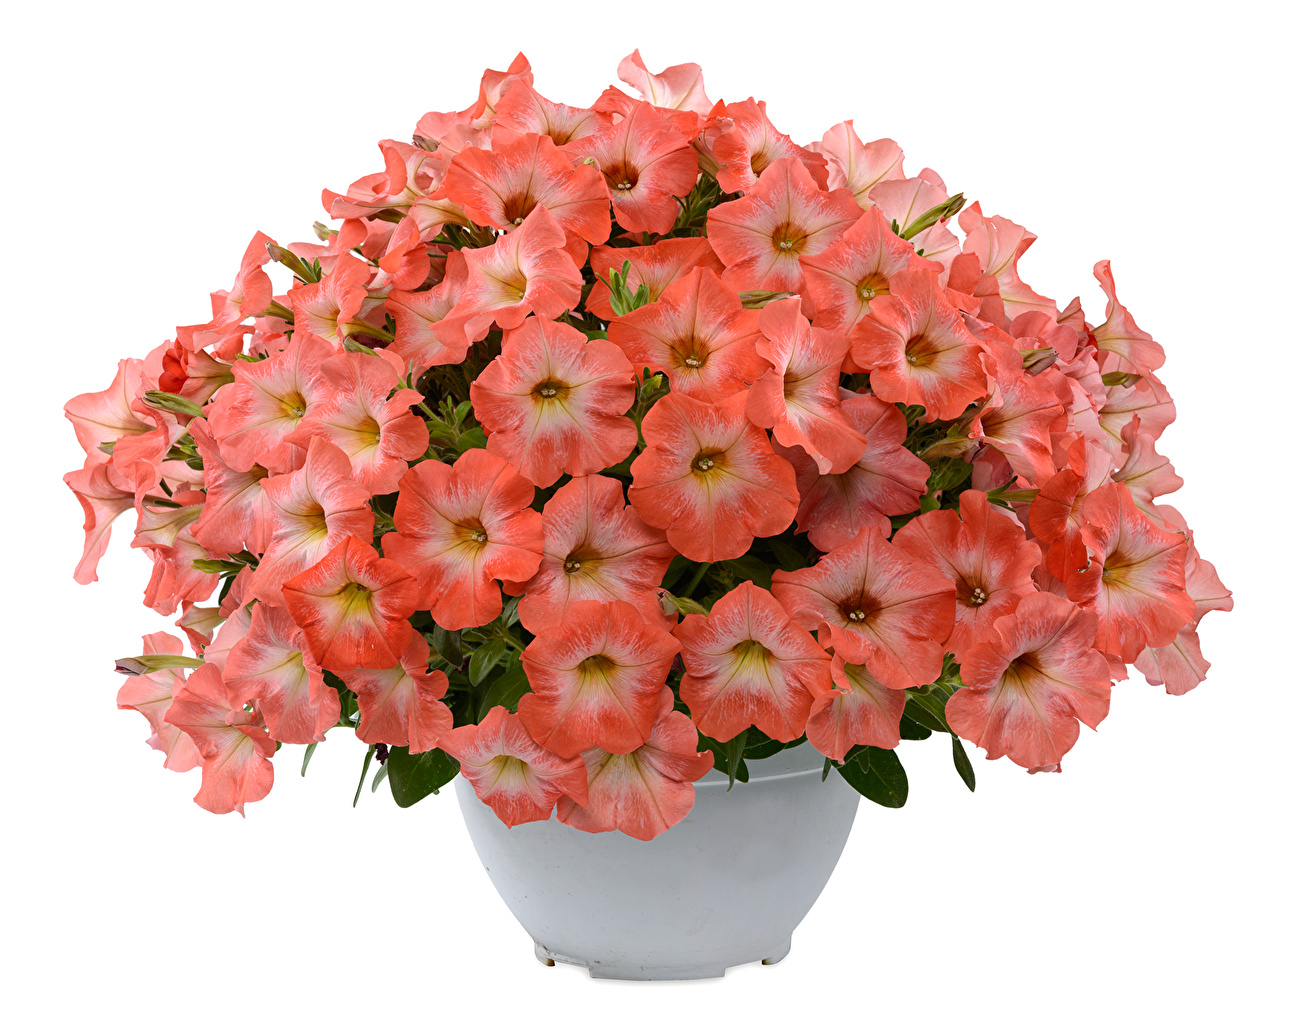 Download Cool Flower Petunia Wallpaper Collection For Desktop